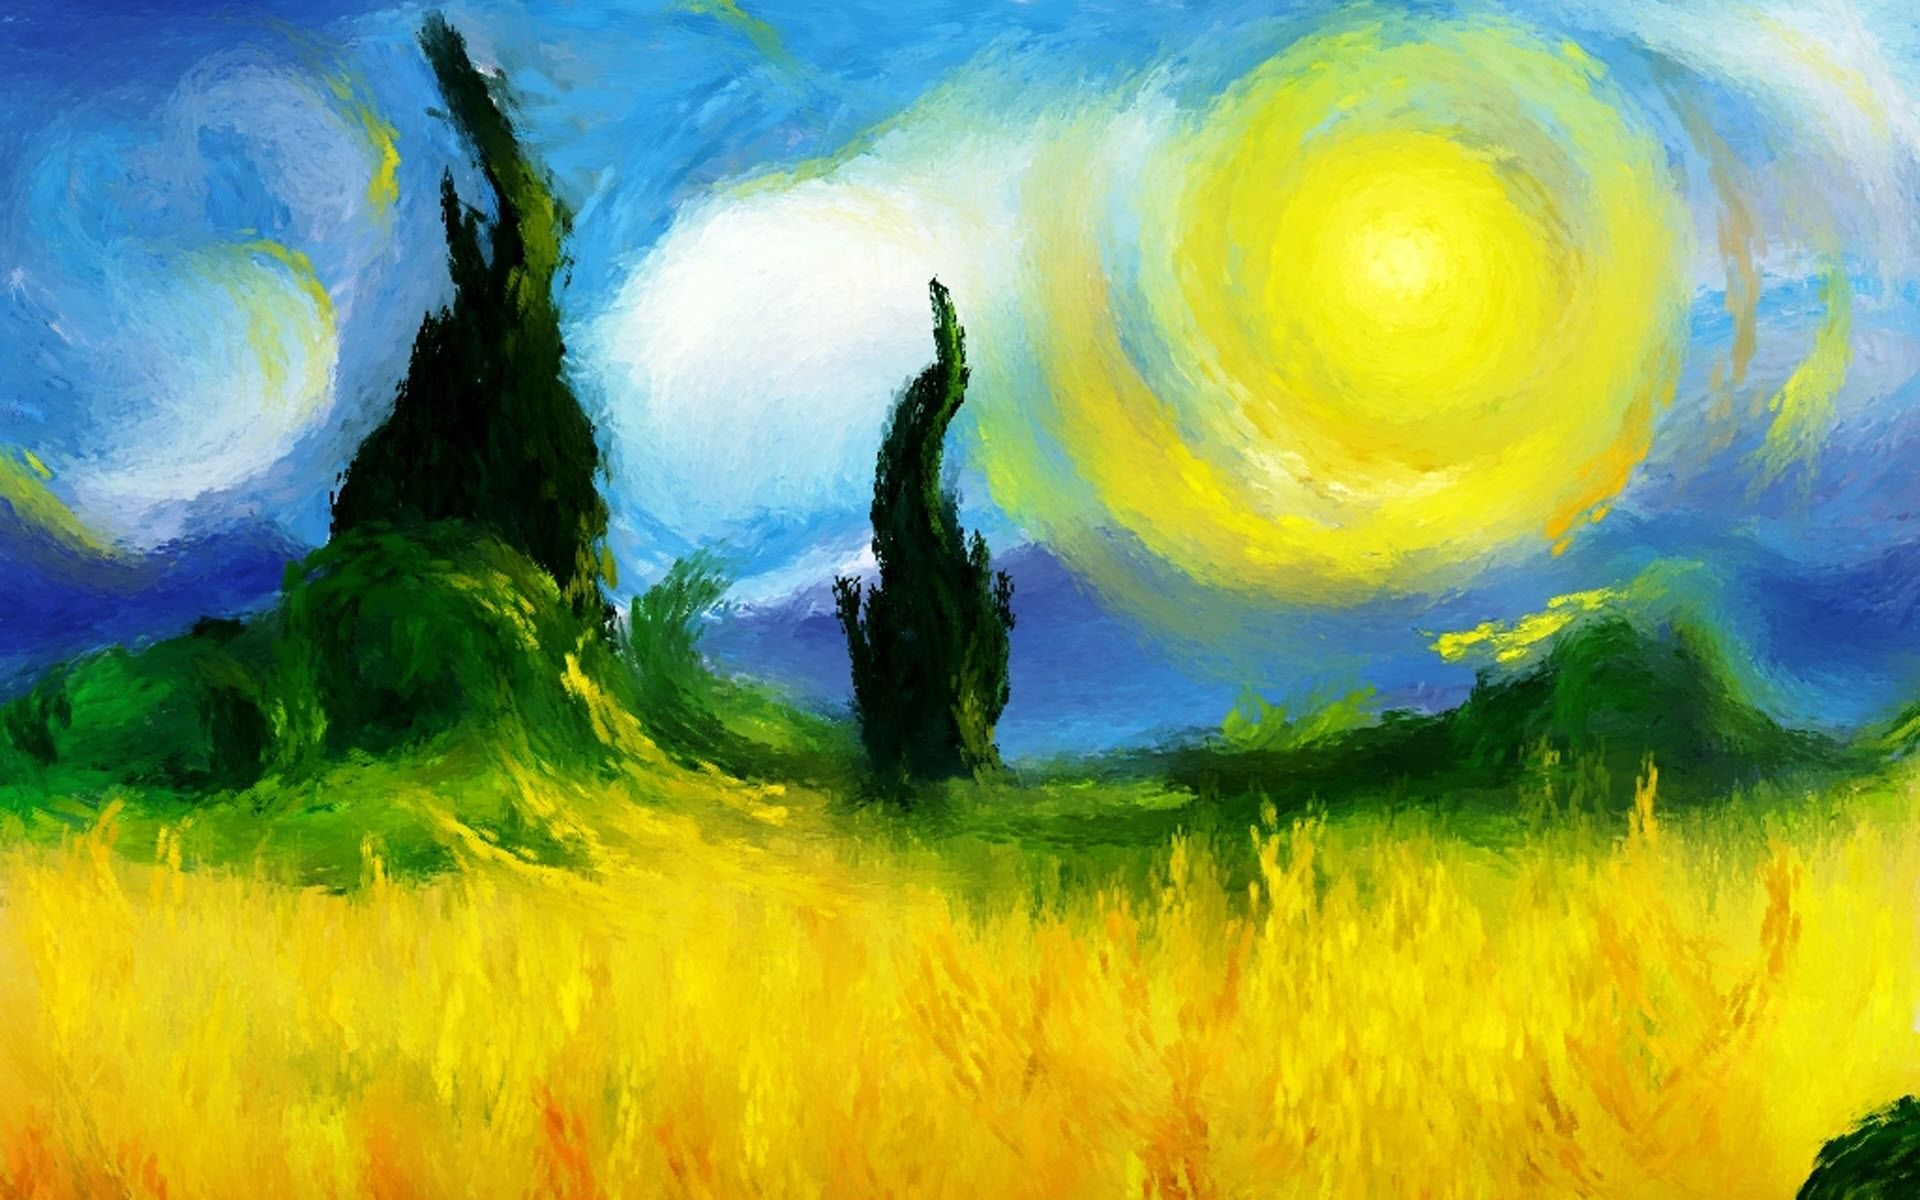 Impressionist Backgrounds, Compatible - PC, Mobile, Gadgets| 1920x1200 px